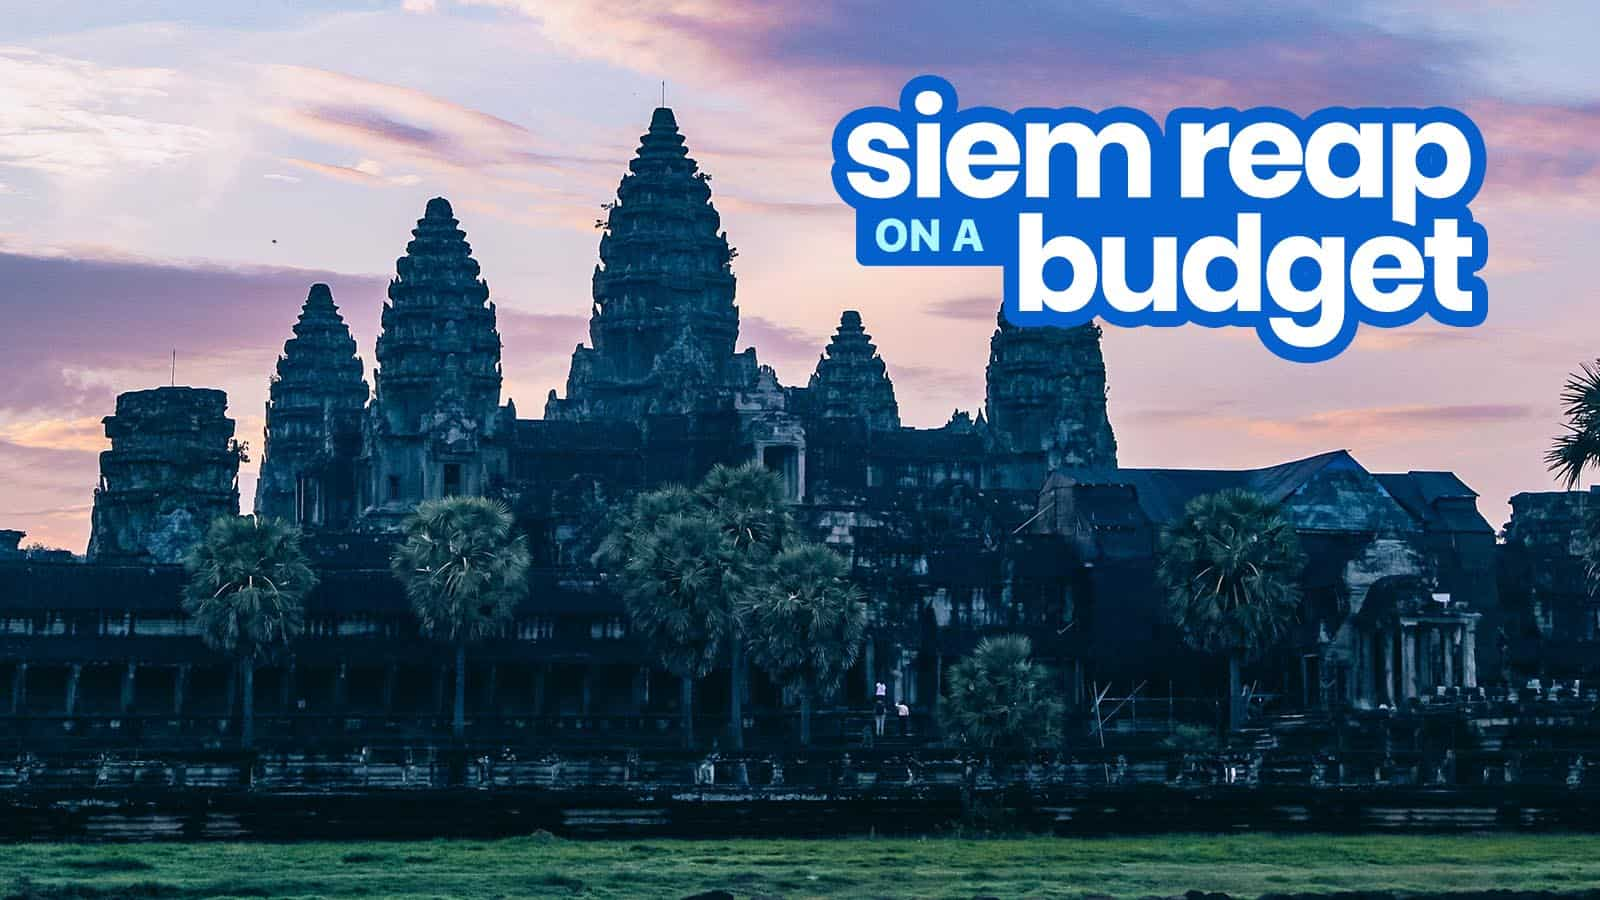 2019 SIEM REAP TRAVEL GUIDE with Budget Itinerary